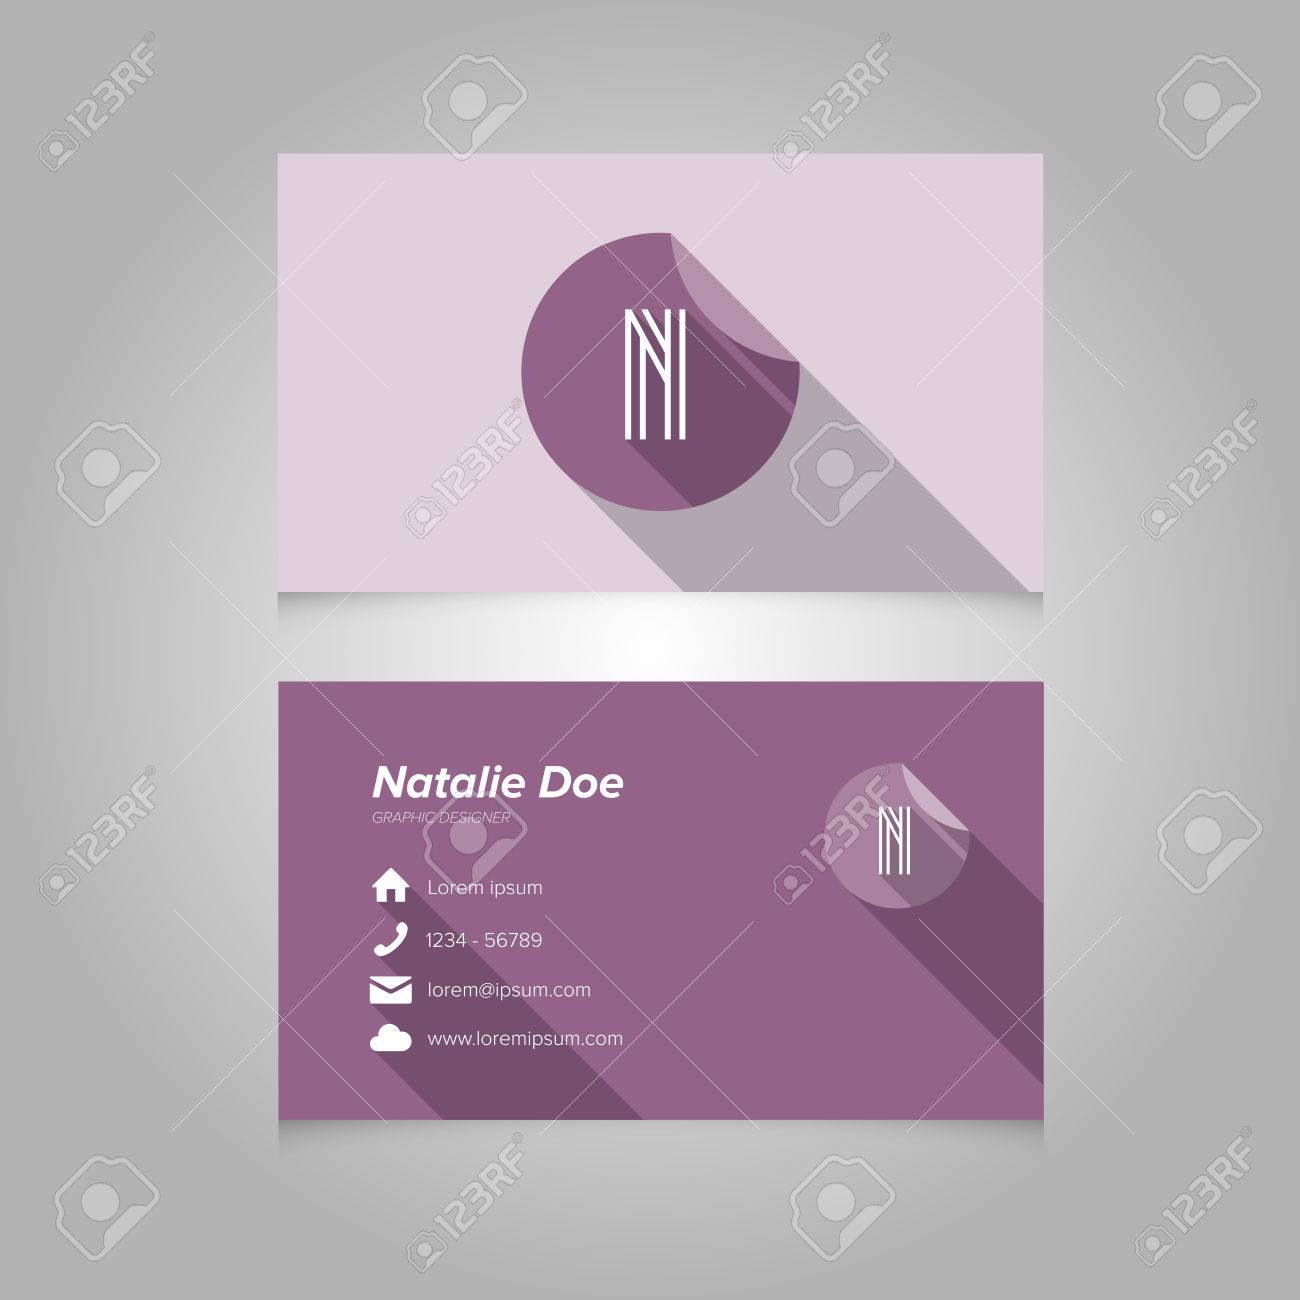 simple business card template with alphabet letter n flat design vector illustration stock vector - Simple Business Card Design